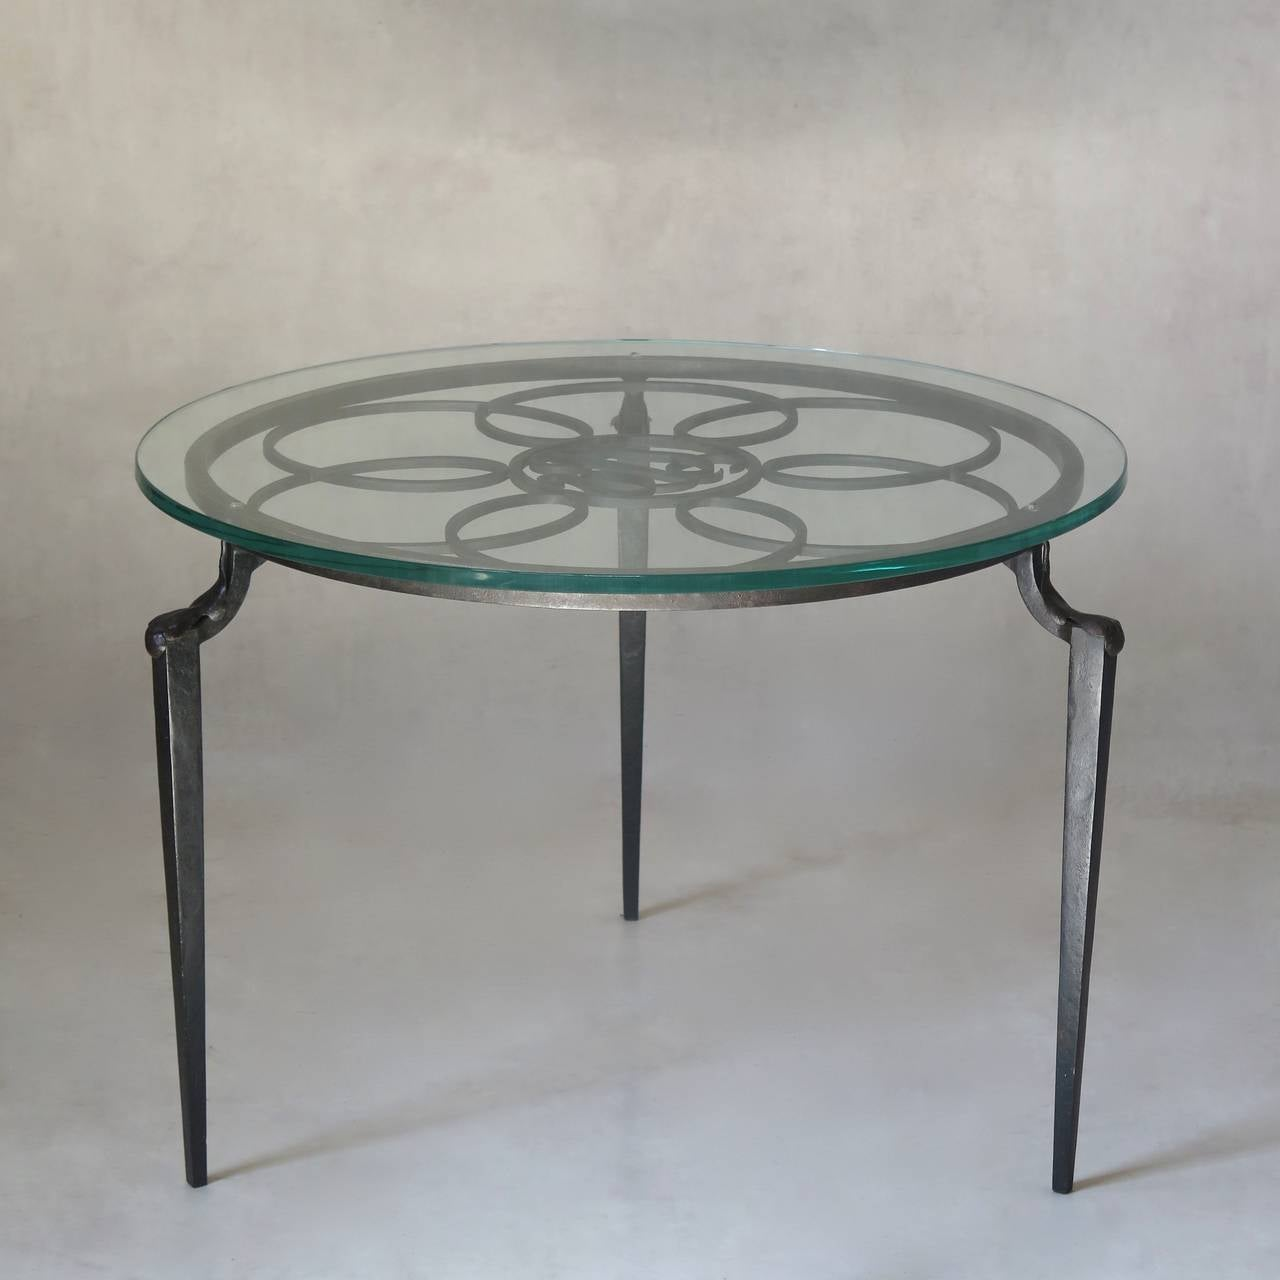 monogrammed wrought iron coffee table with glass